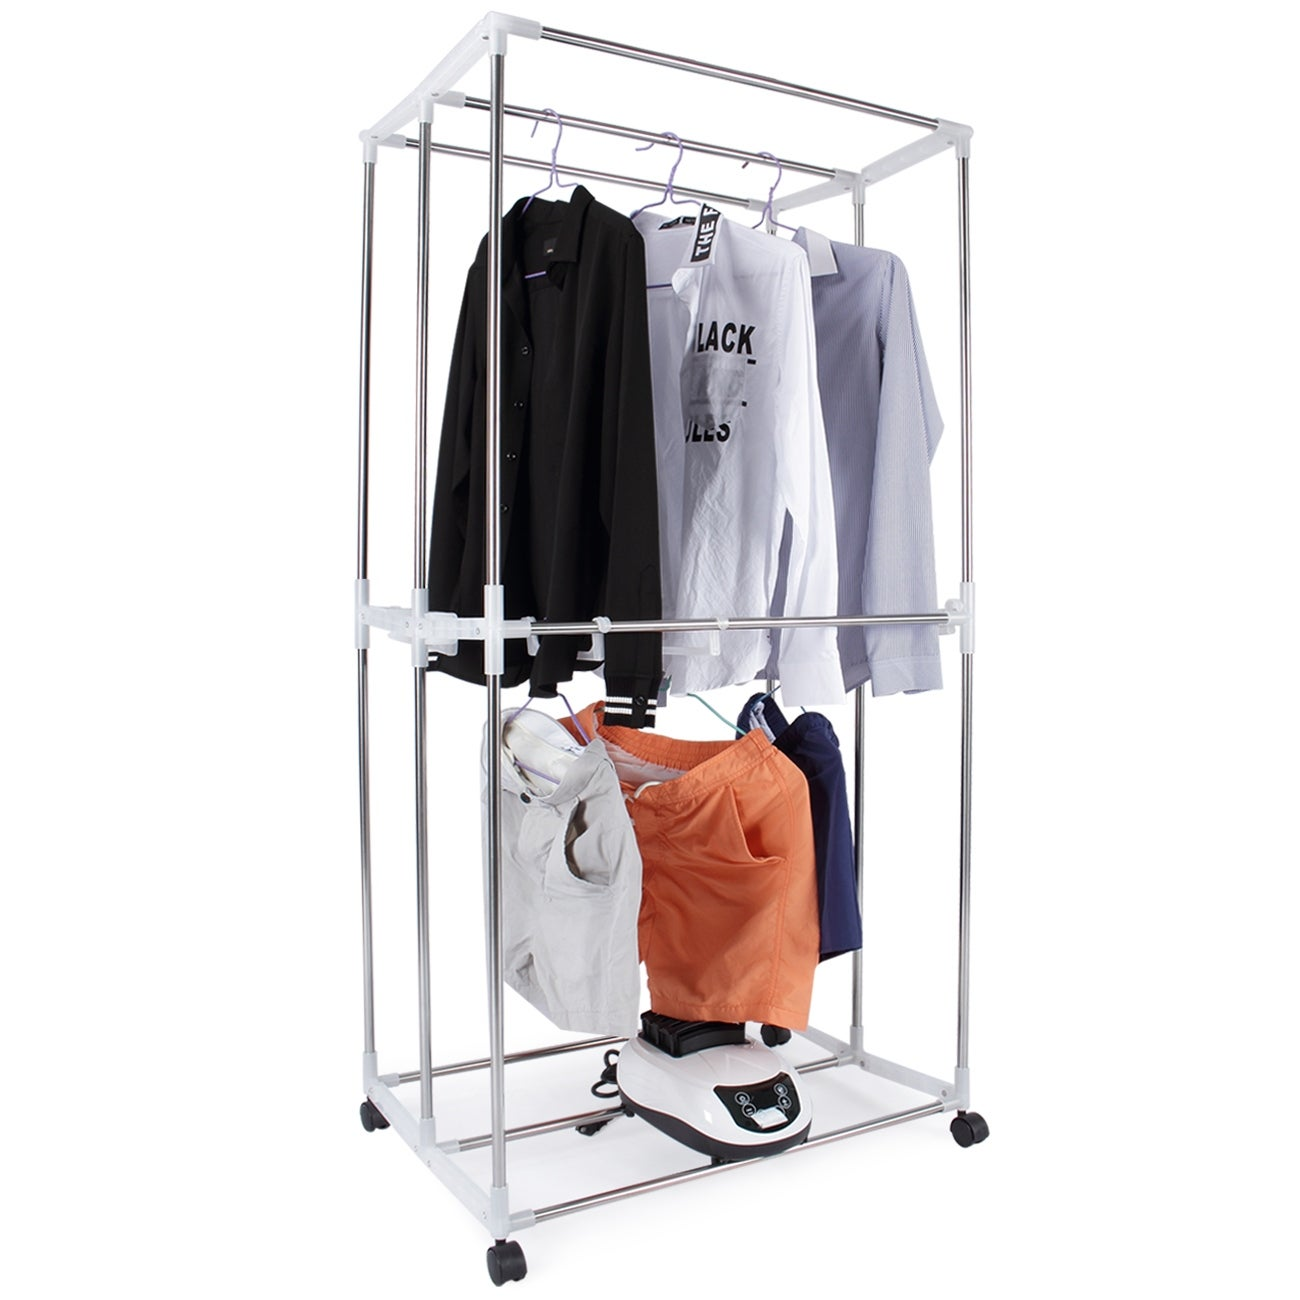 Shop Della 15KG Compact Electric Portable Energy Saving Clothing Dryer Rack  For Homes, Dorms, Convenient In 30 Minutes   Free Shipping Today    Overstock.com ...